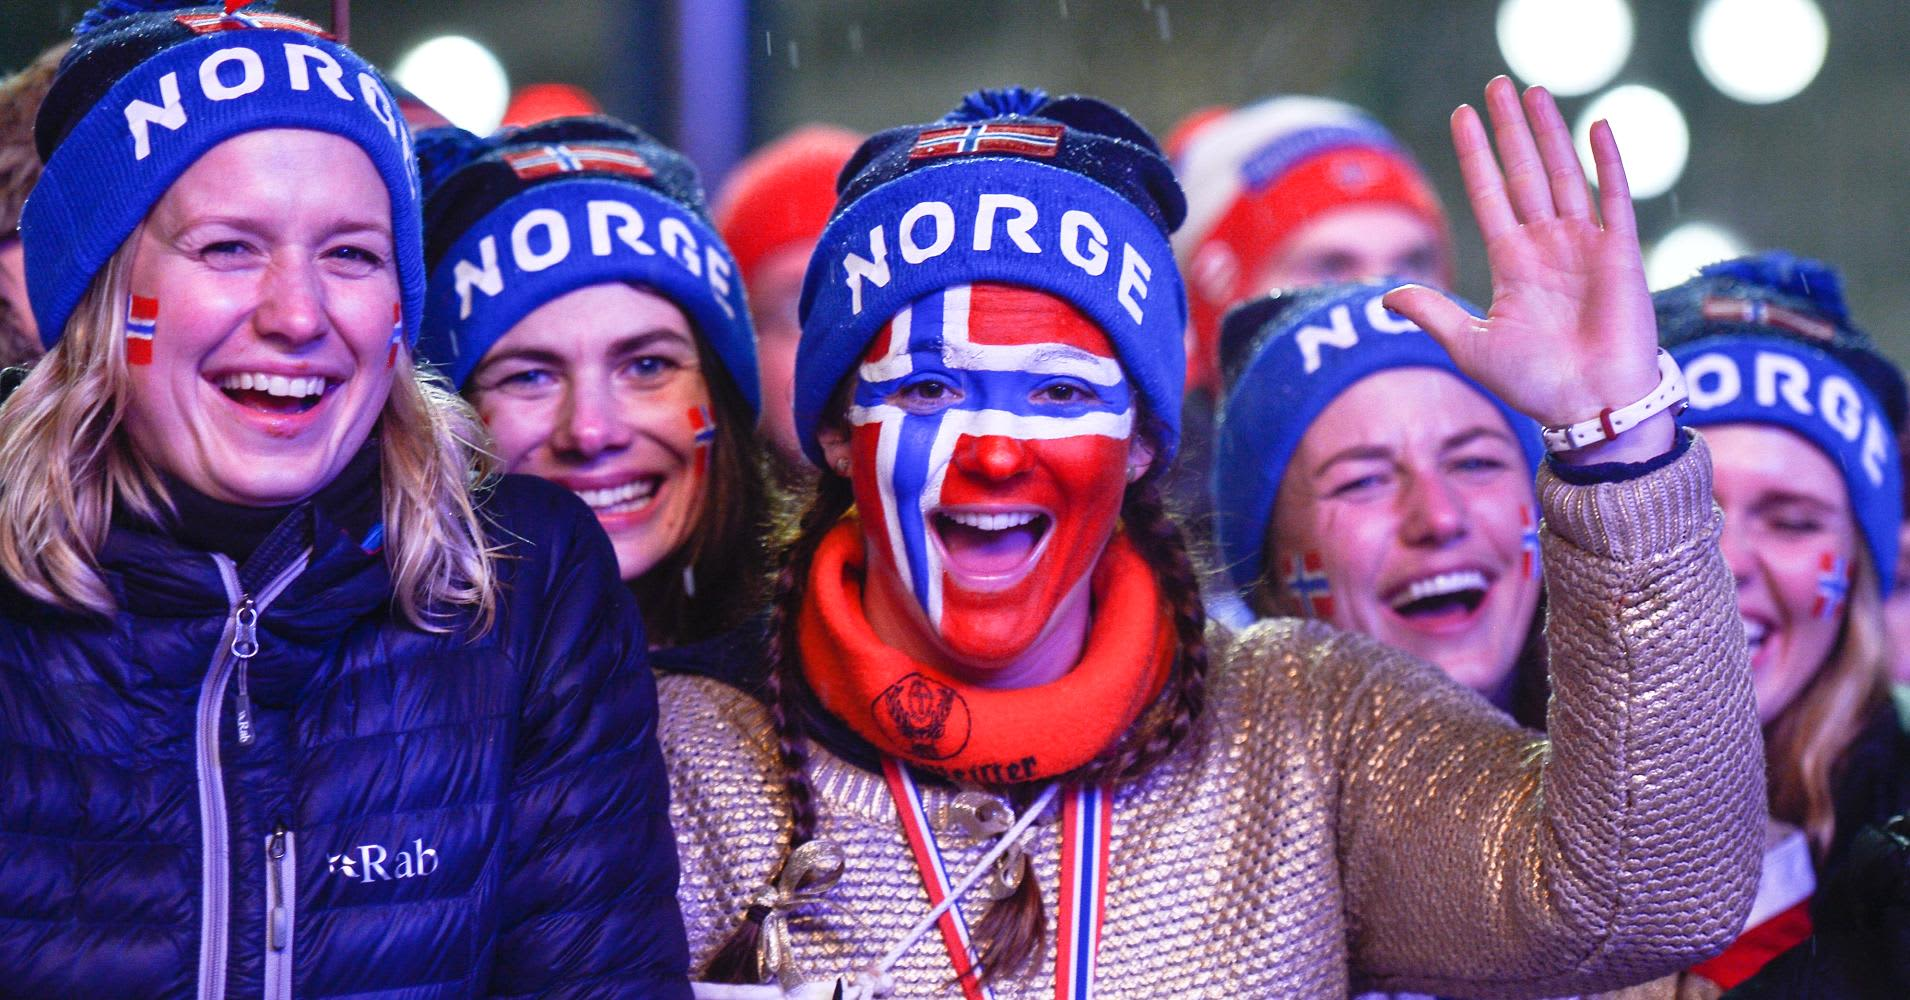 Norwegian fans celebrate.